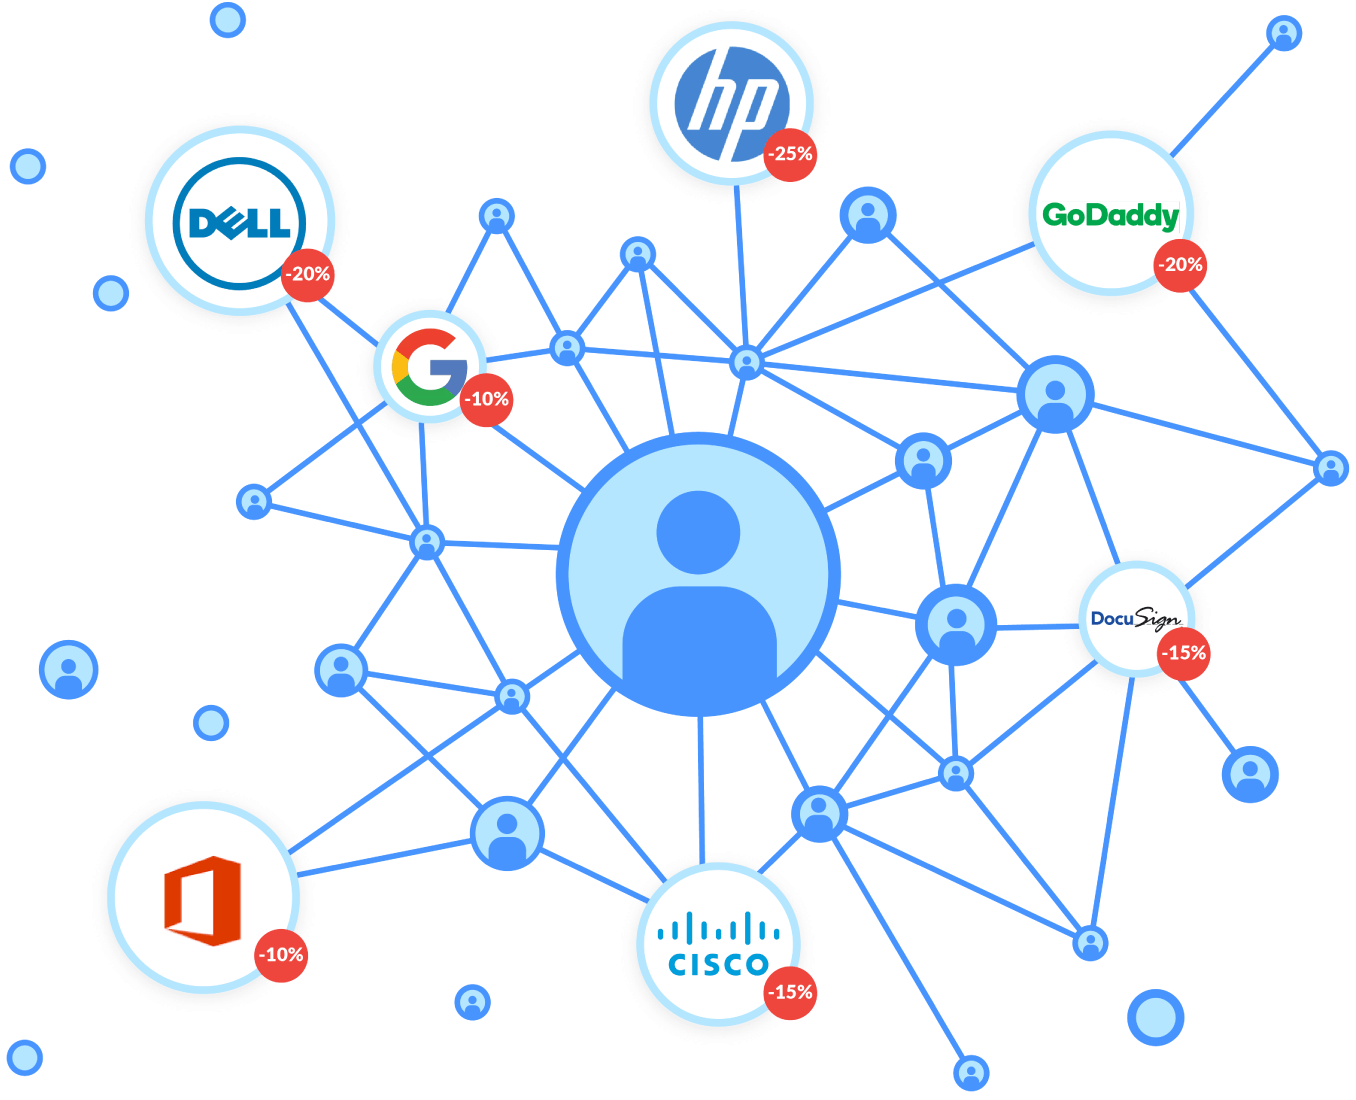 Save Big with the Genuity IT Marketplace, including GoDaddy, Google Apps, Cisco, Docusign, HP, Office 365, and Dell.